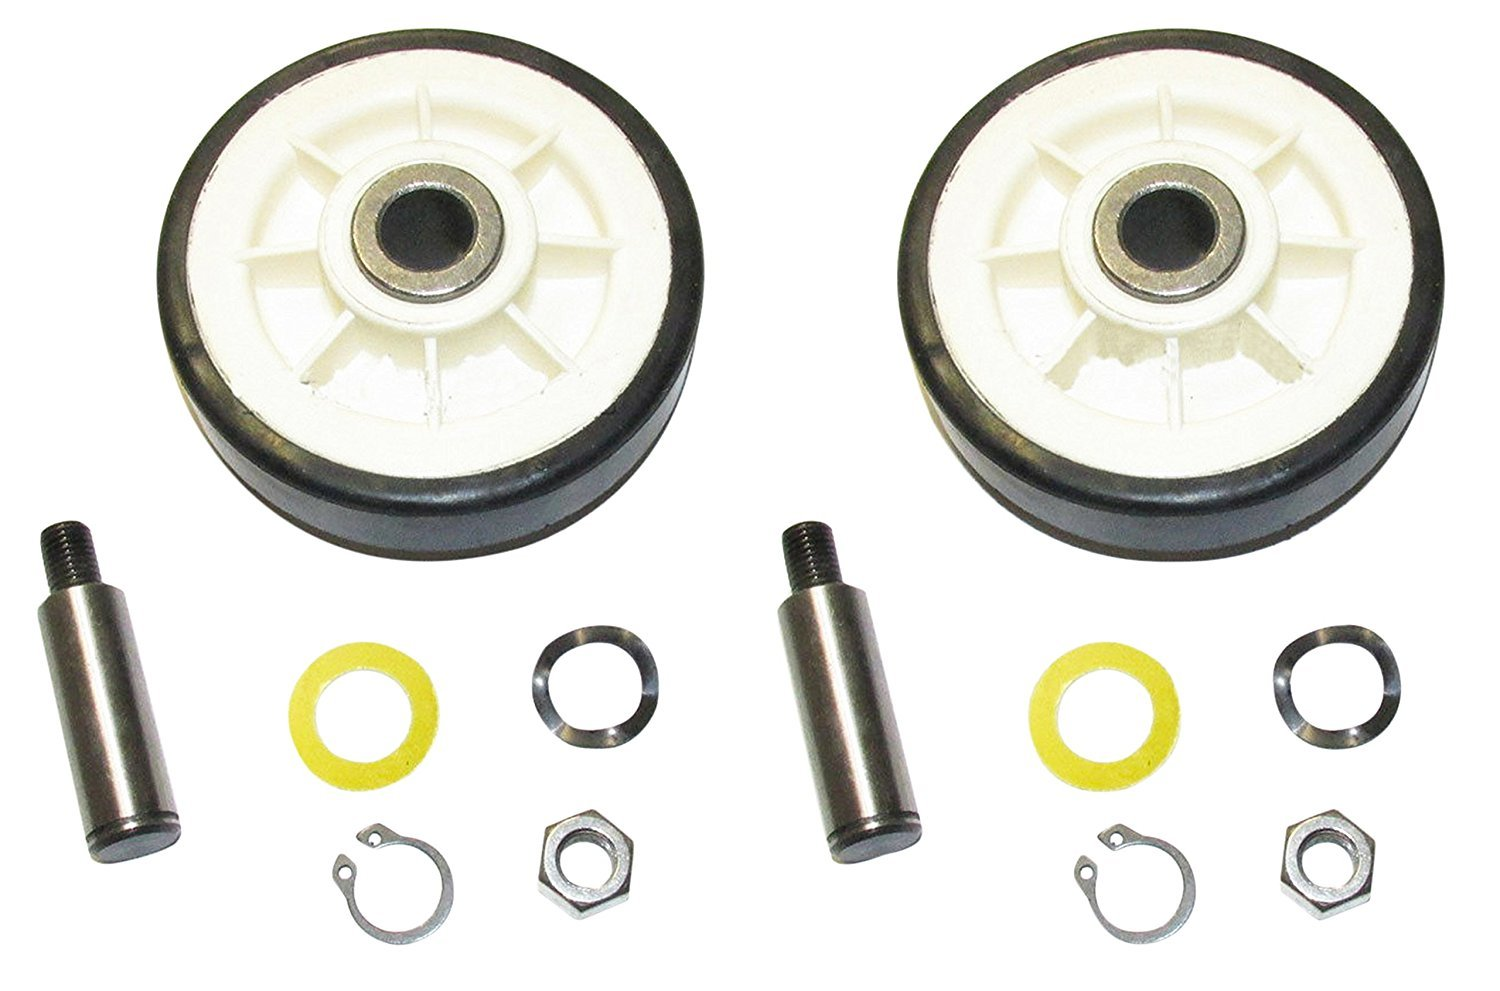 303373 Dryer Drum Roller & Shaft Kit (Set of 2) Replacement For Maytag, Jenn-Air, Crosley, Whirlpool, Kenmore Dryers